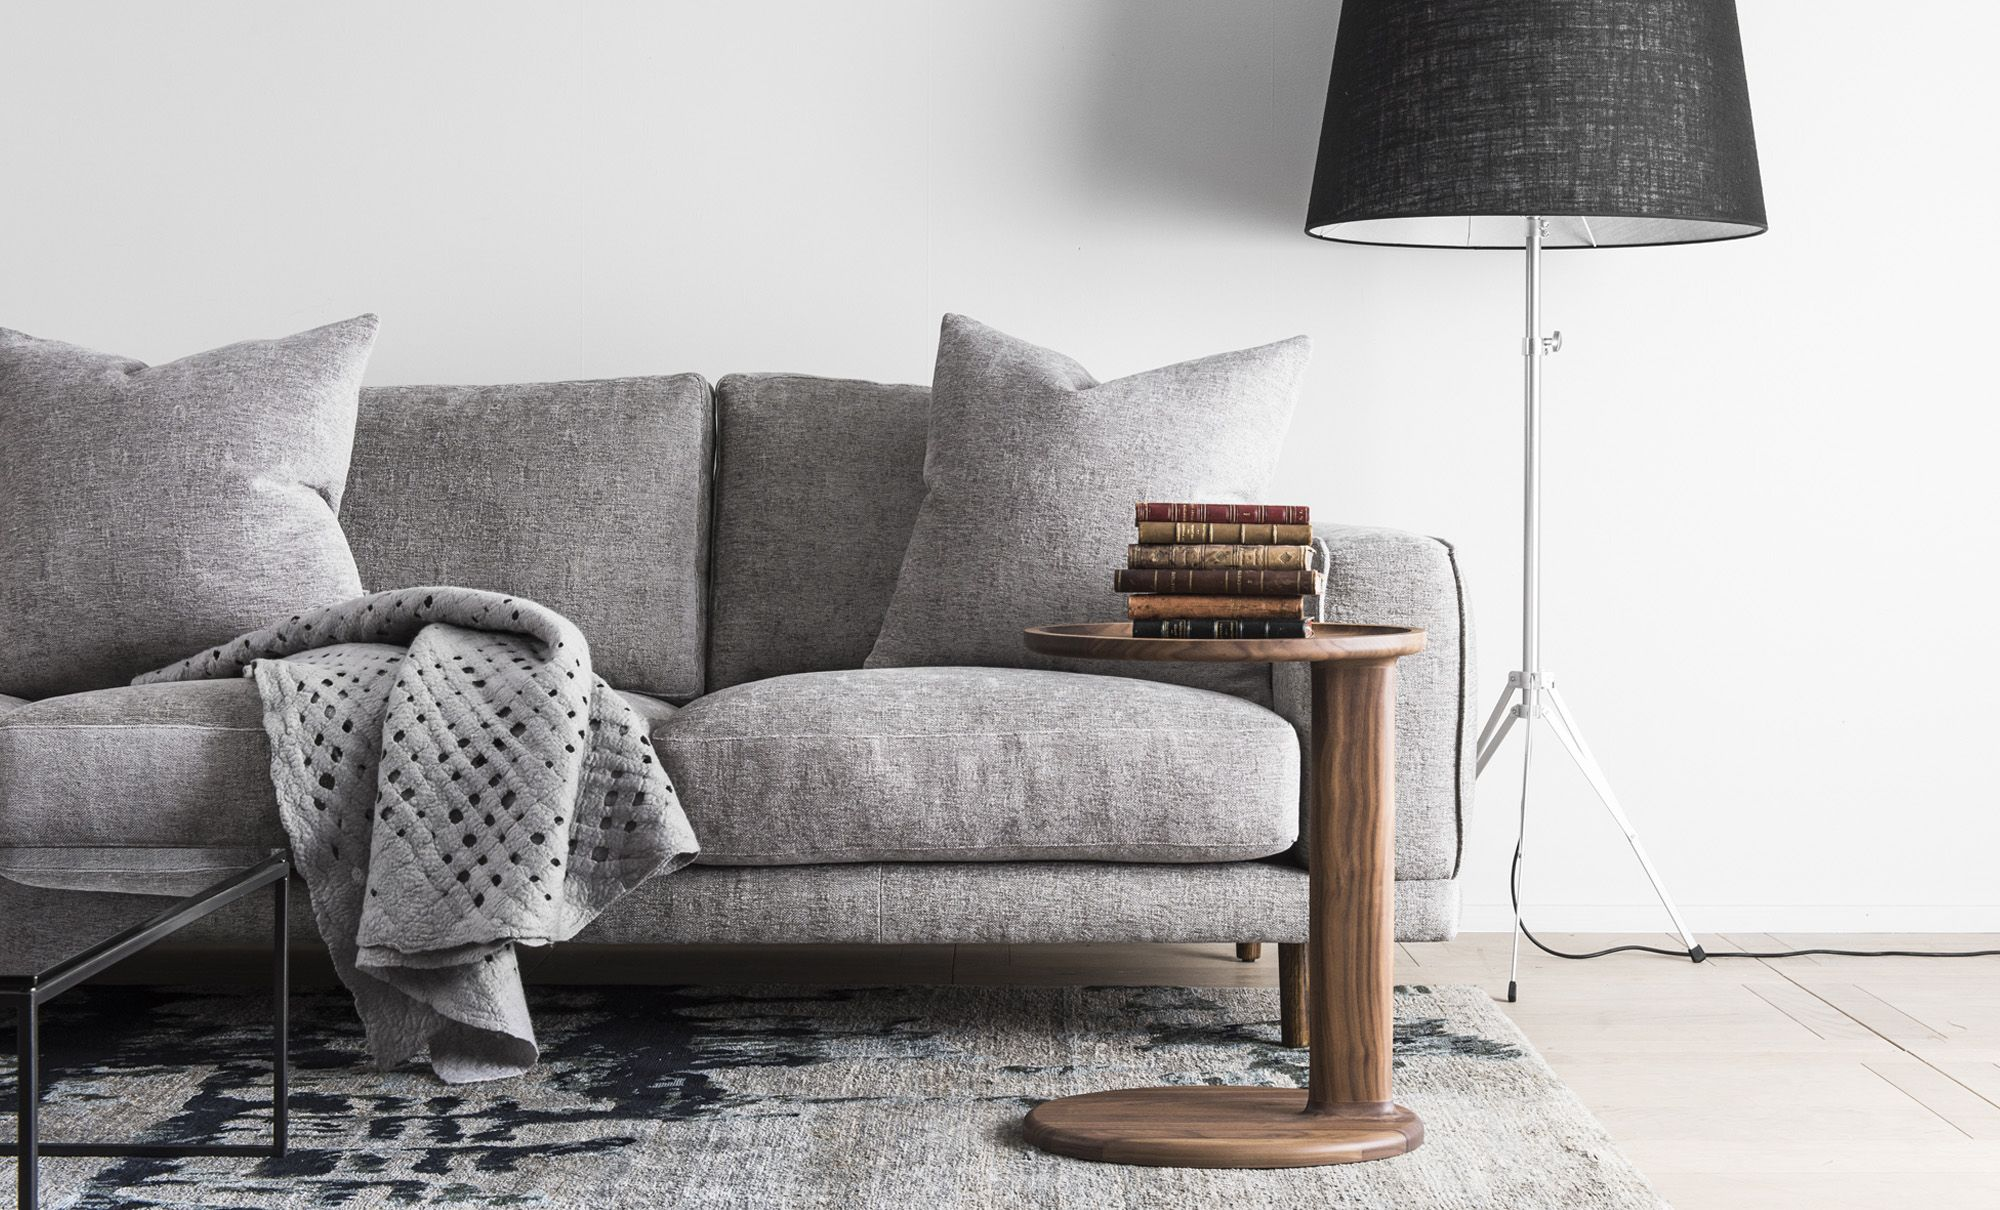 Modular Sofa Gumtree Melbourne Charlie Sofa With Rug Throw Side Table And Coffee Table And Floor